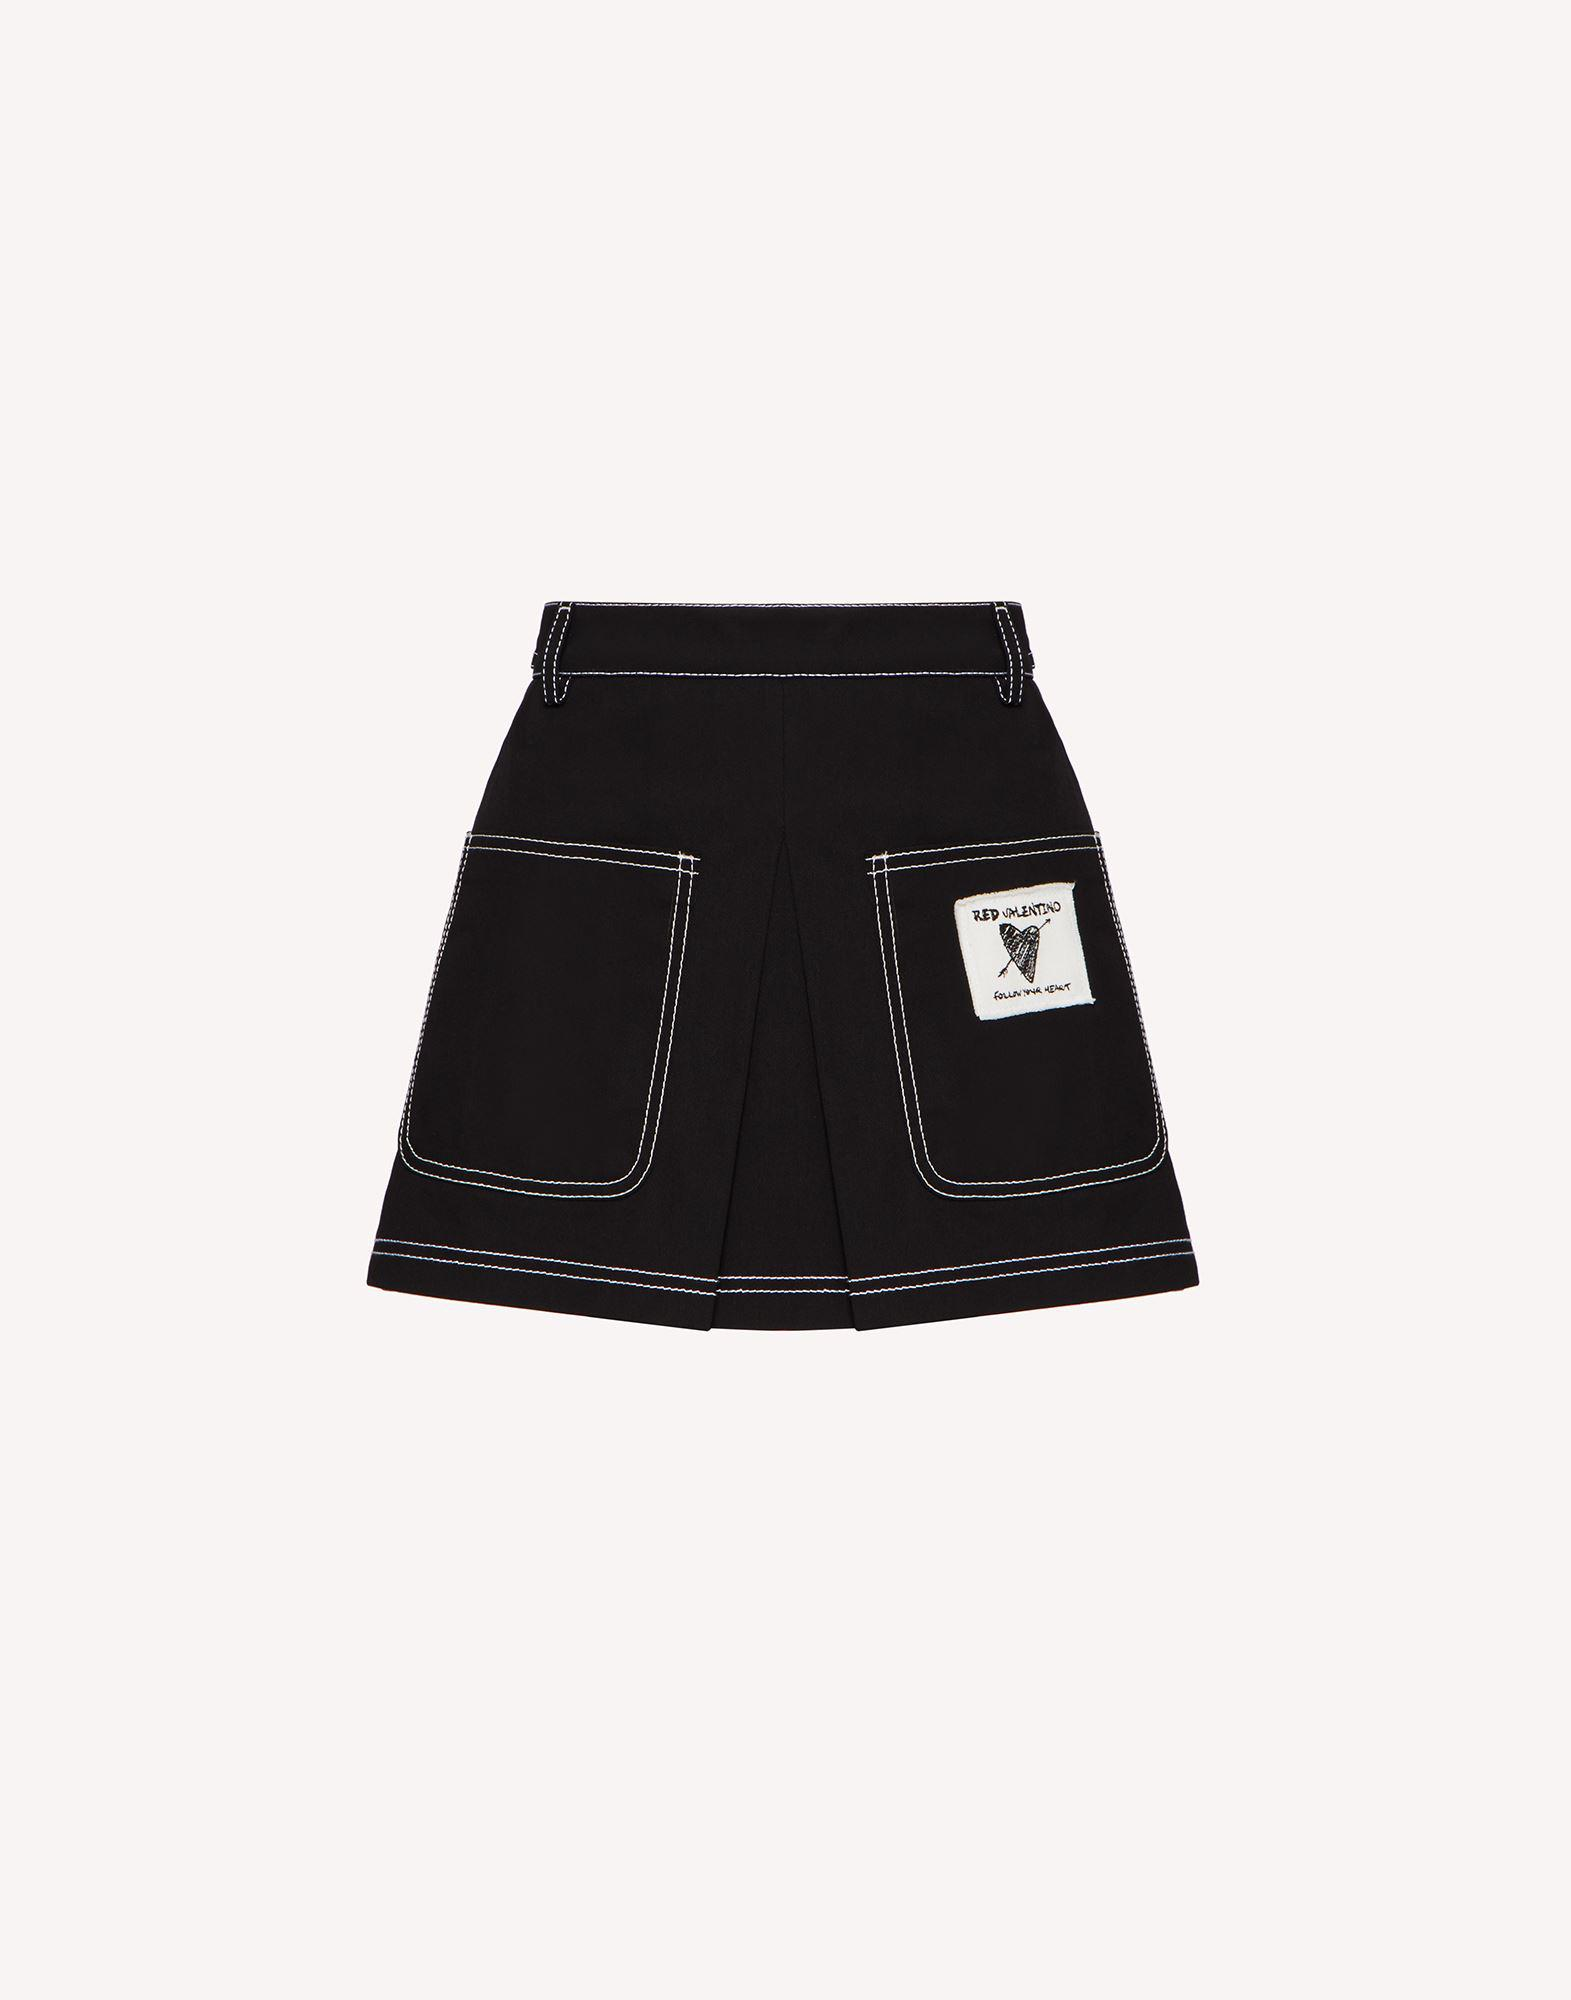 STRETCH GABARDINE SHORTS WITH CONTRASTING STITCHING DETAIL 4